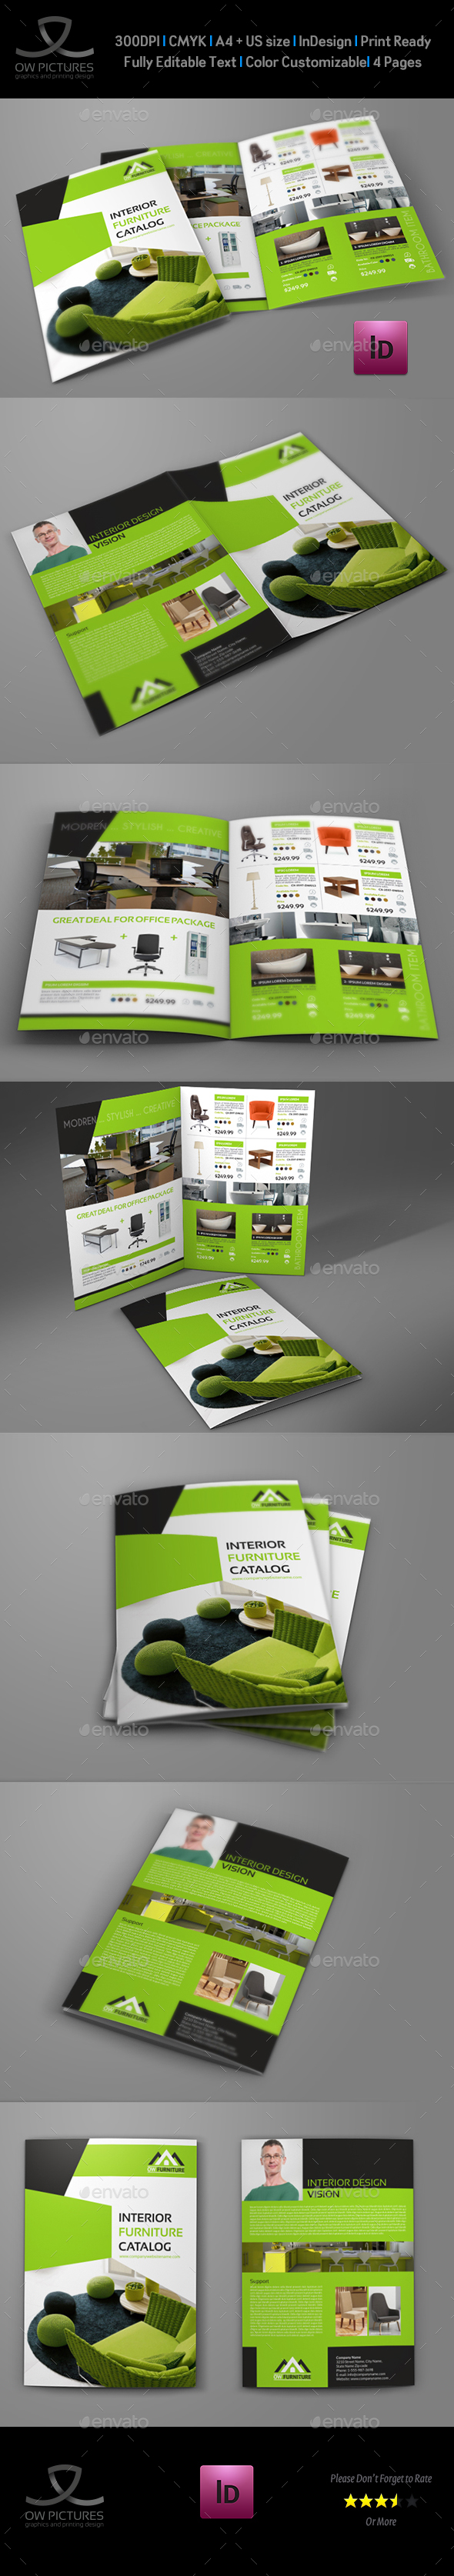 Furniture Products Catalog Bi-Fold Brochure - Catalogs Brochures